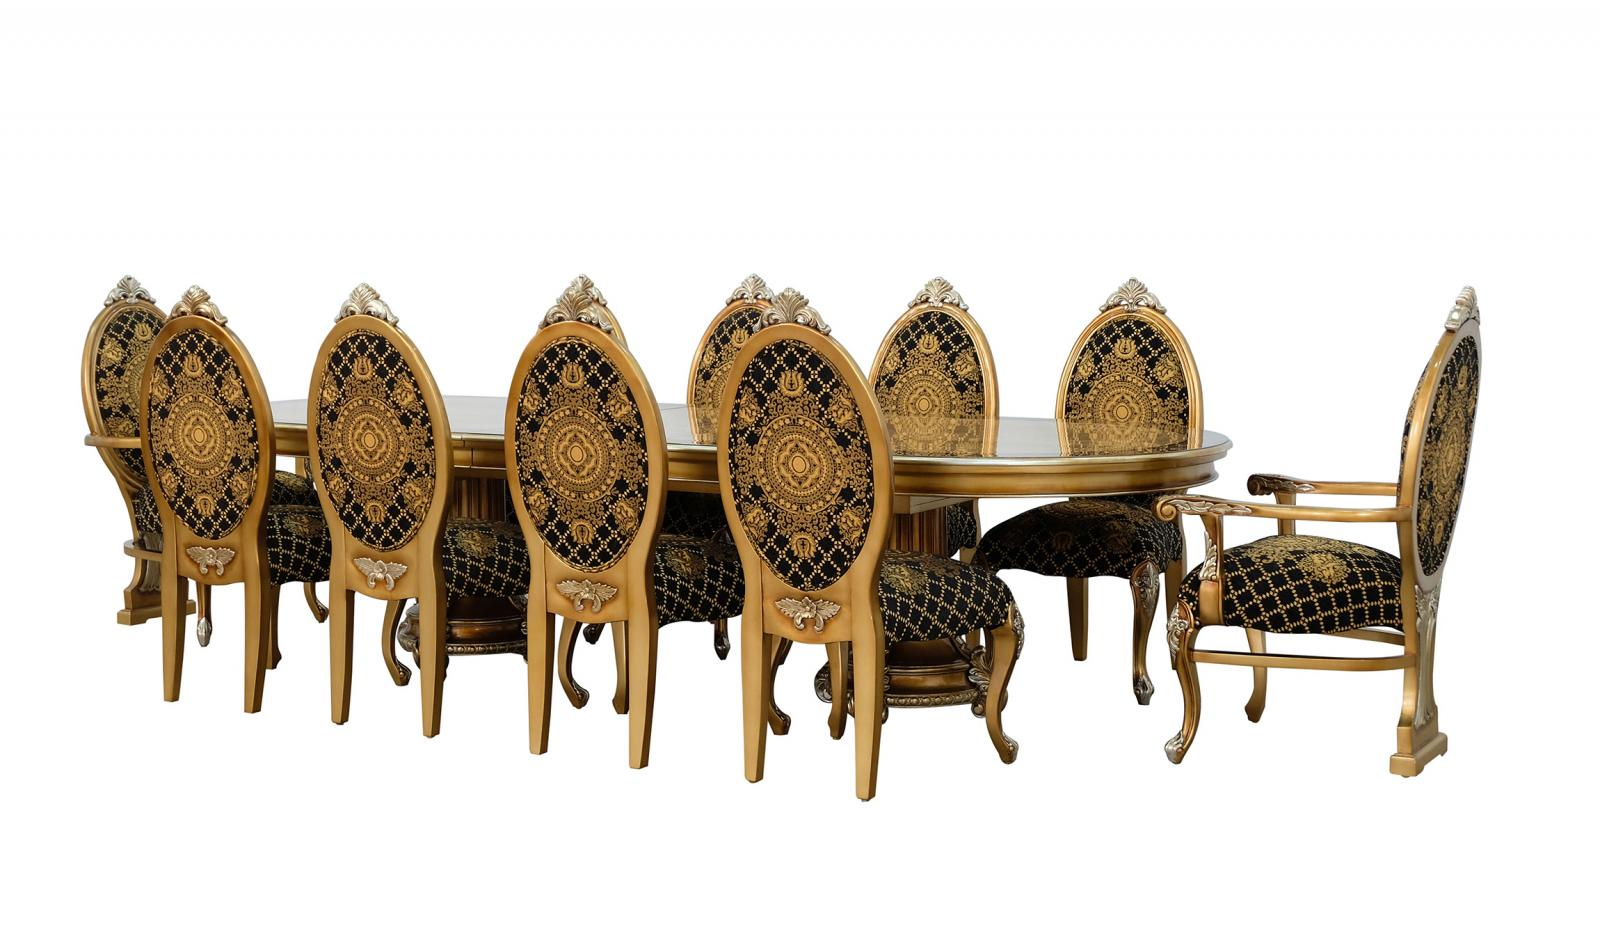 Classic, Traditional Brown, Silver, Ebony Fabric and Wood, Solid Hardwood Dining Table Set 11 pcs EMPERADOR by European Furniture